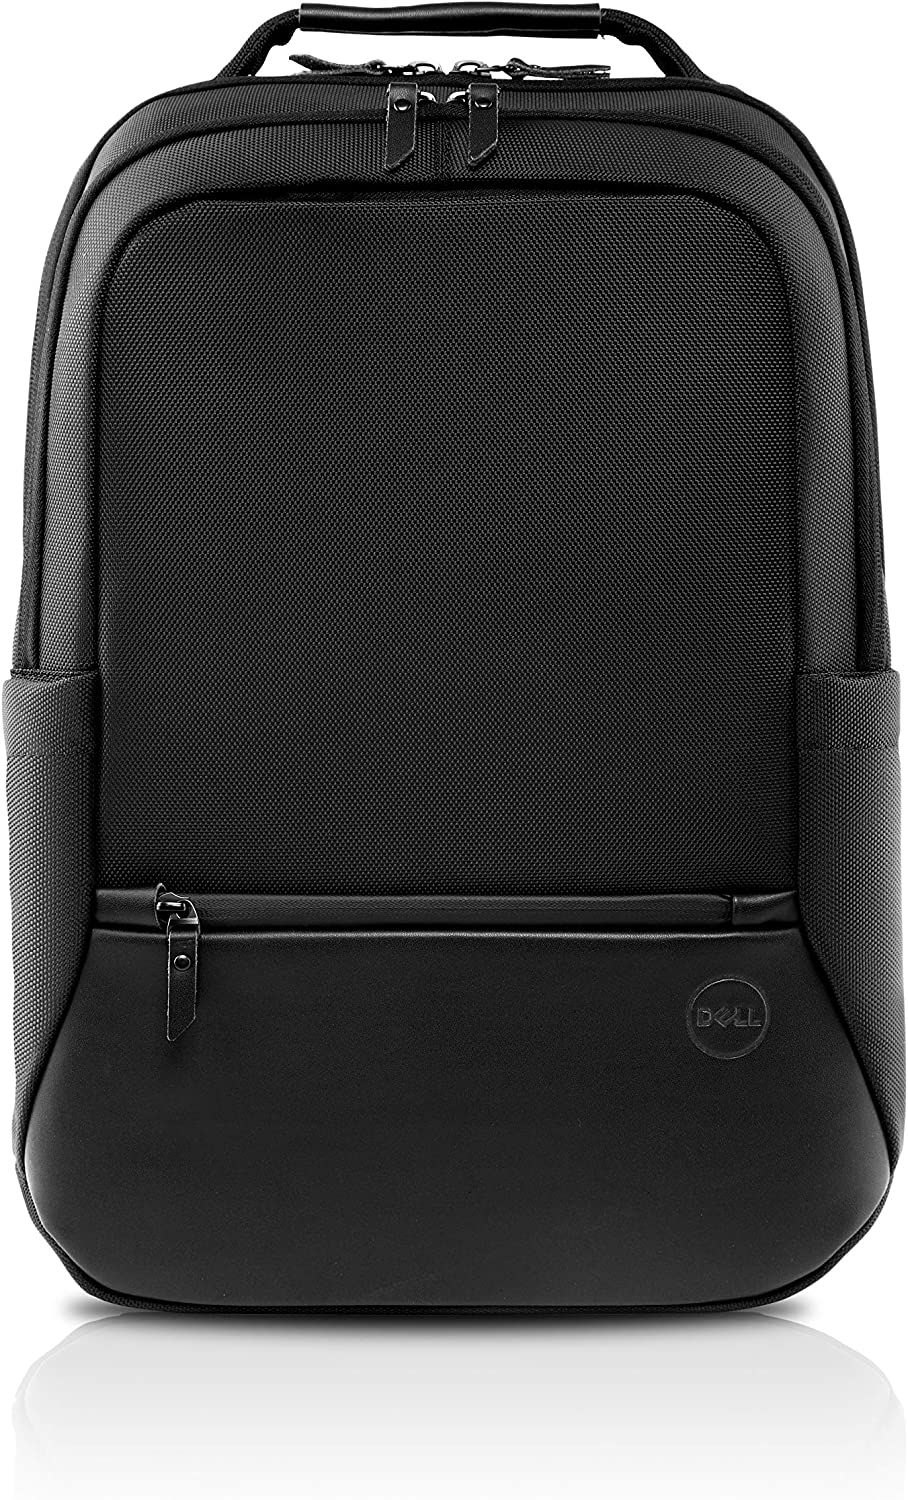 Dell Premier Backpack 15 PE1520P Fits Most laptops up to 15Inch, PE-BP-15-20 (Fits Most laptops up to 15Inch)